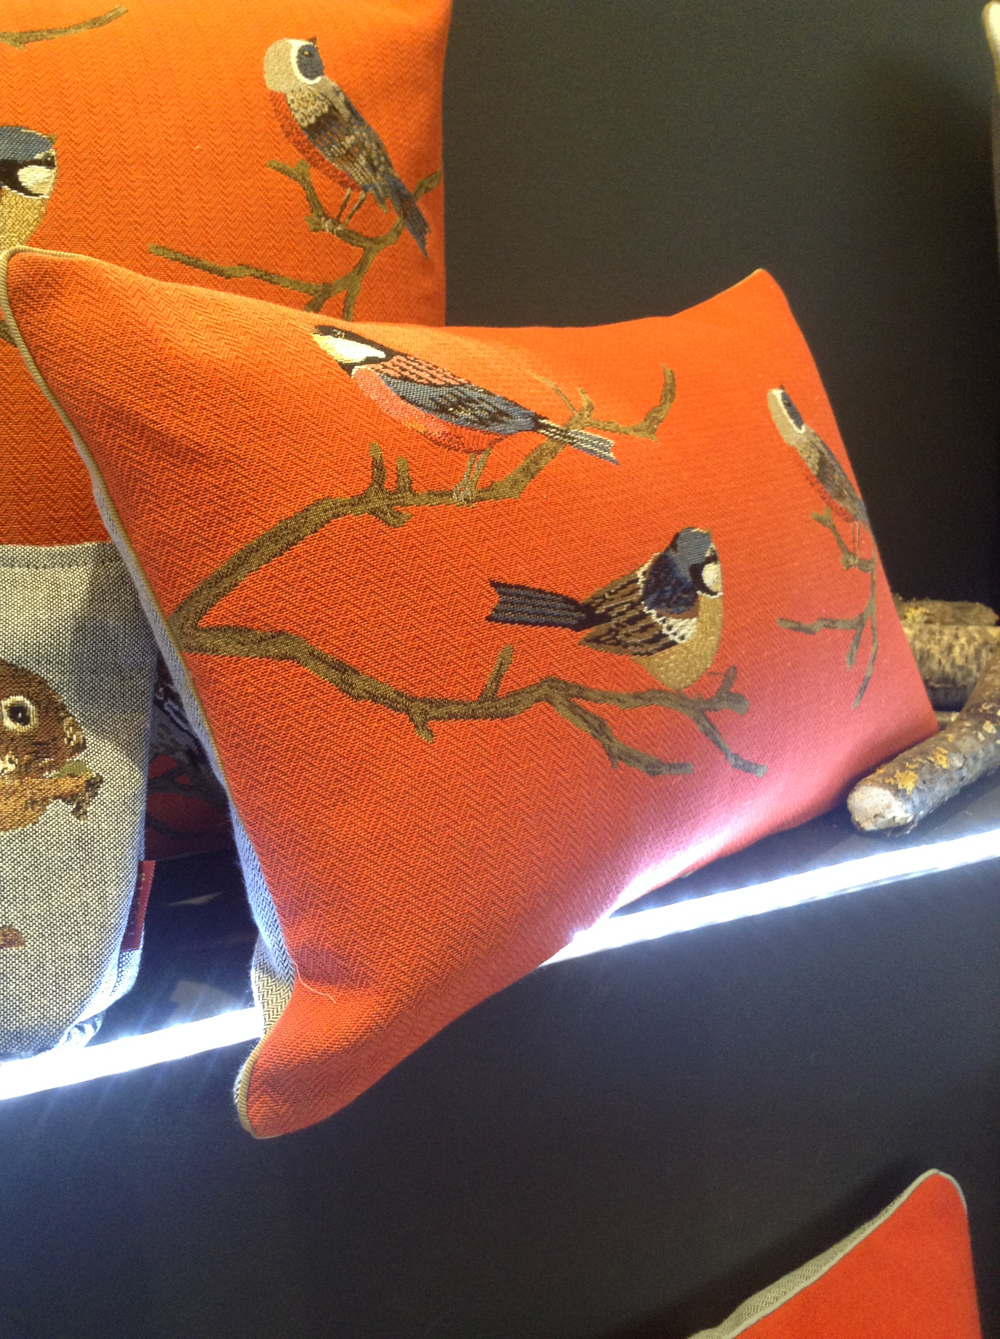 leather goods and a cushion with a bird design